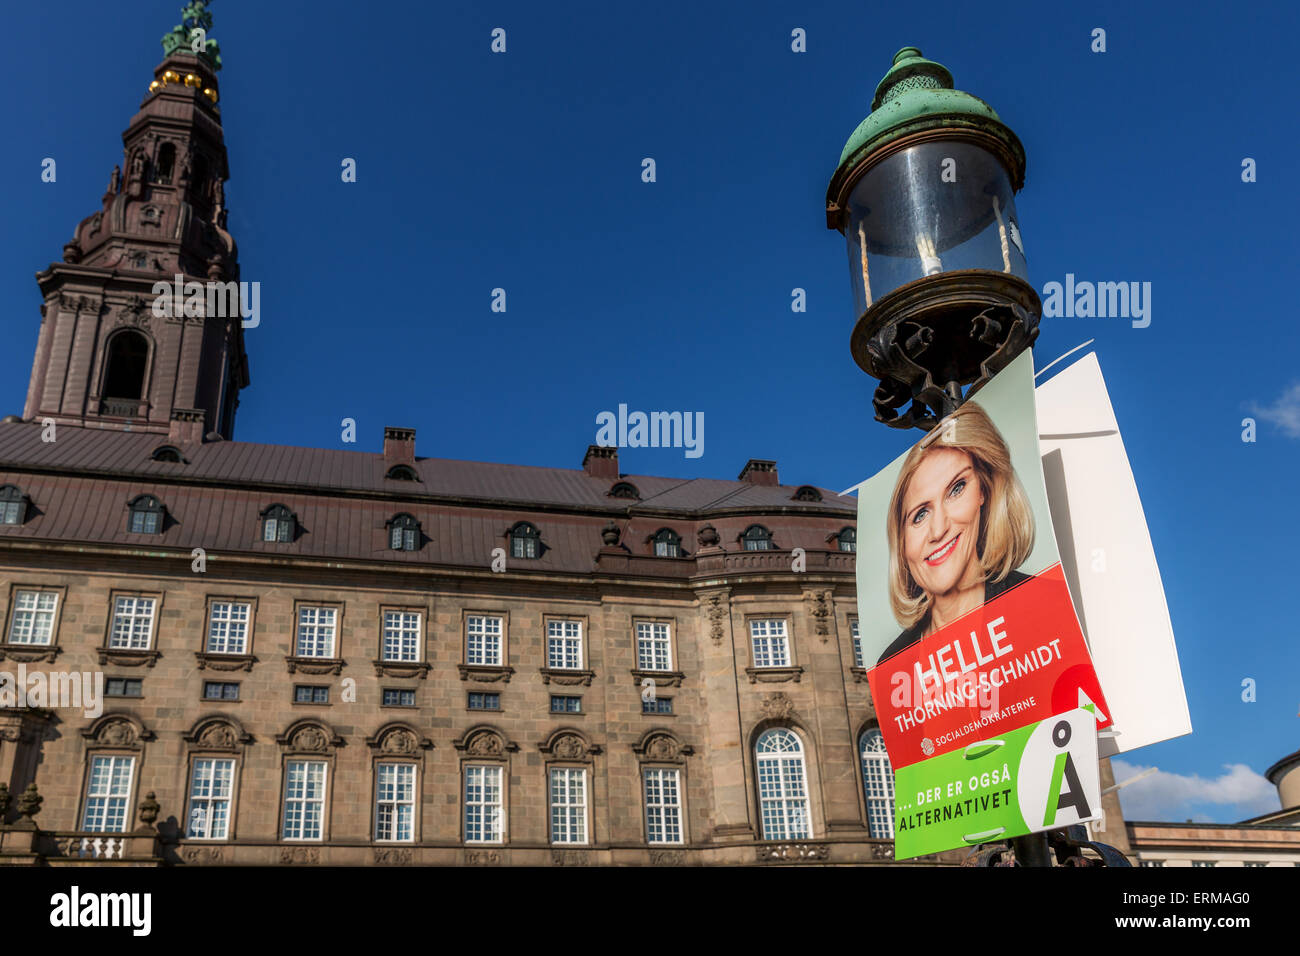 Election poster promoting Helle Thorning-Schmidt in front of the Danish Parliament, Copenhagen, Denmark - Stock Image